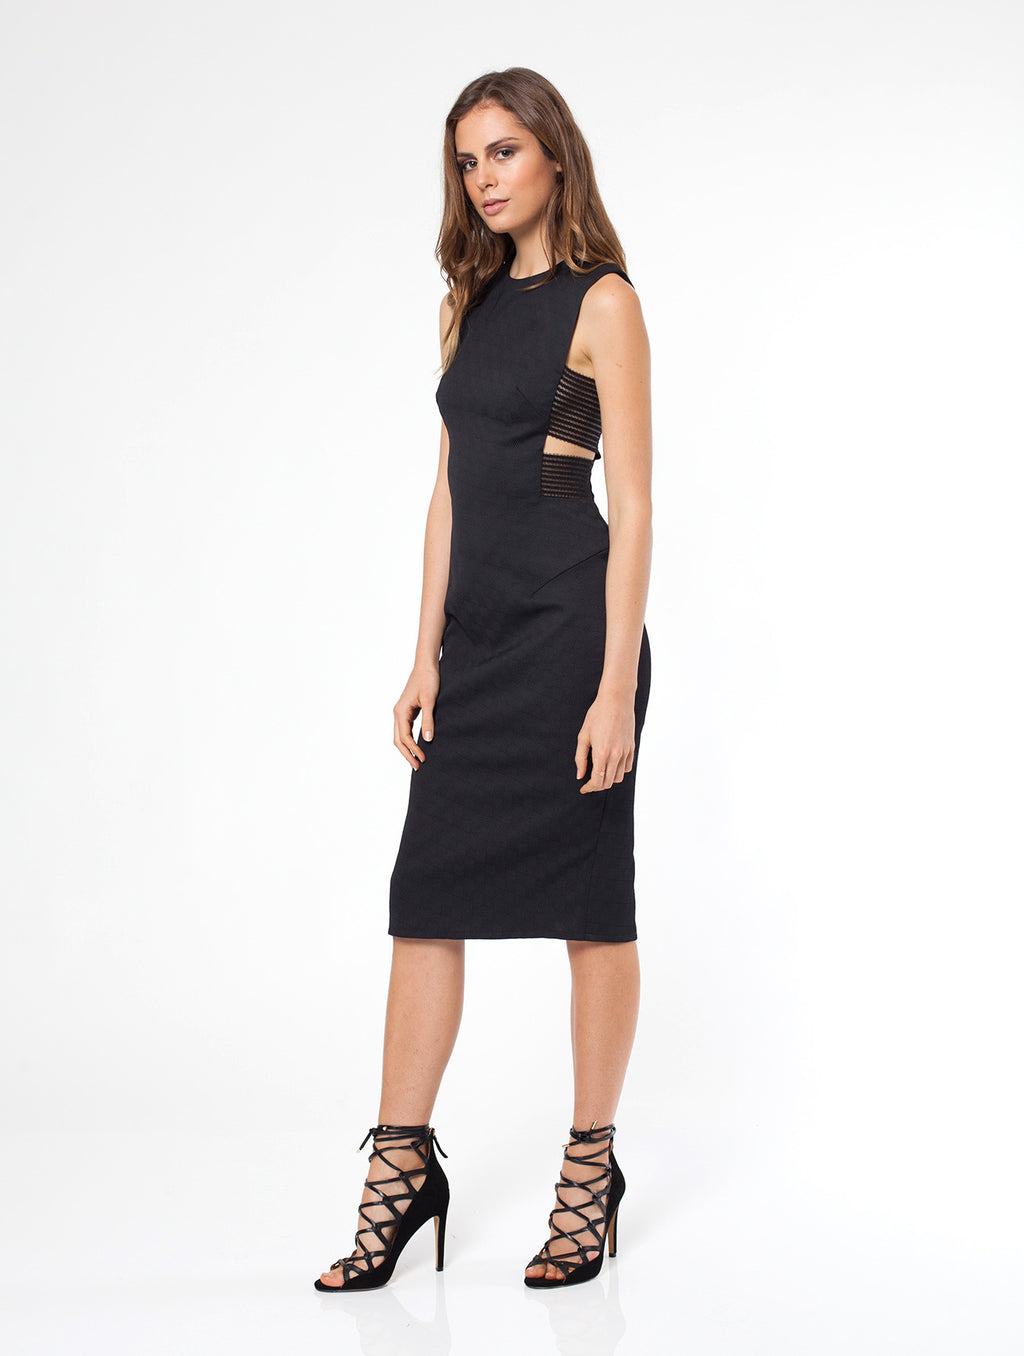 Mirage Cutout Dress